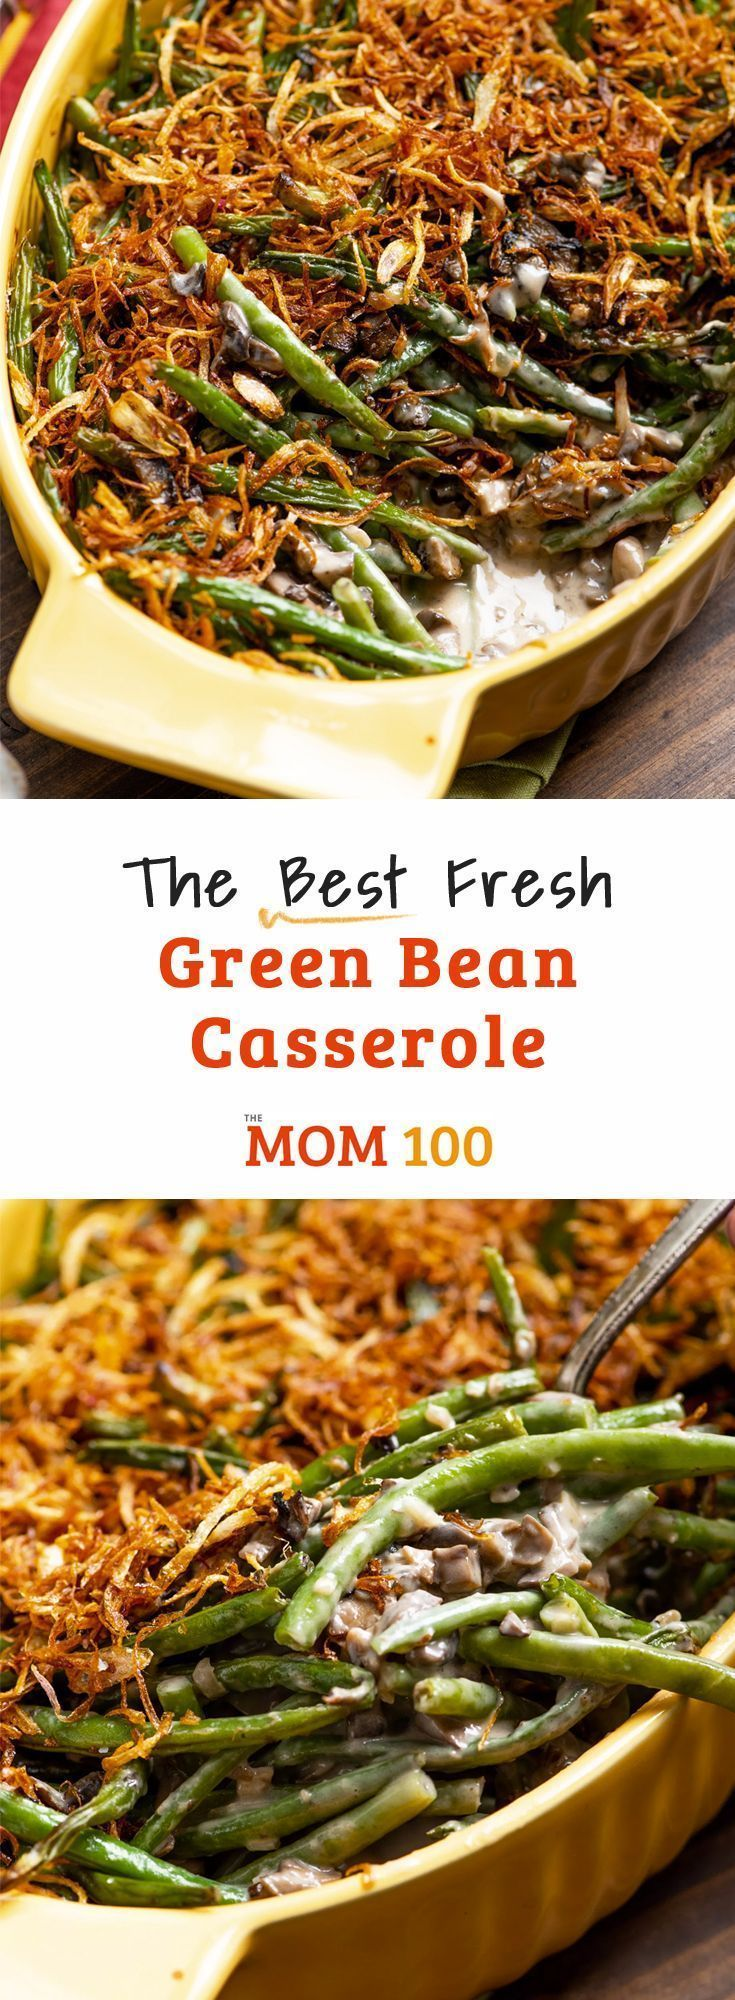 Fresh Green Bean Casserole #howtofryonions The Best Fresh Green Bean Casserole / No more canned soup and fried onions! This is a fresh take on one of everyone's favorite nostalgic holiday side dishes. #greenbeancasserole